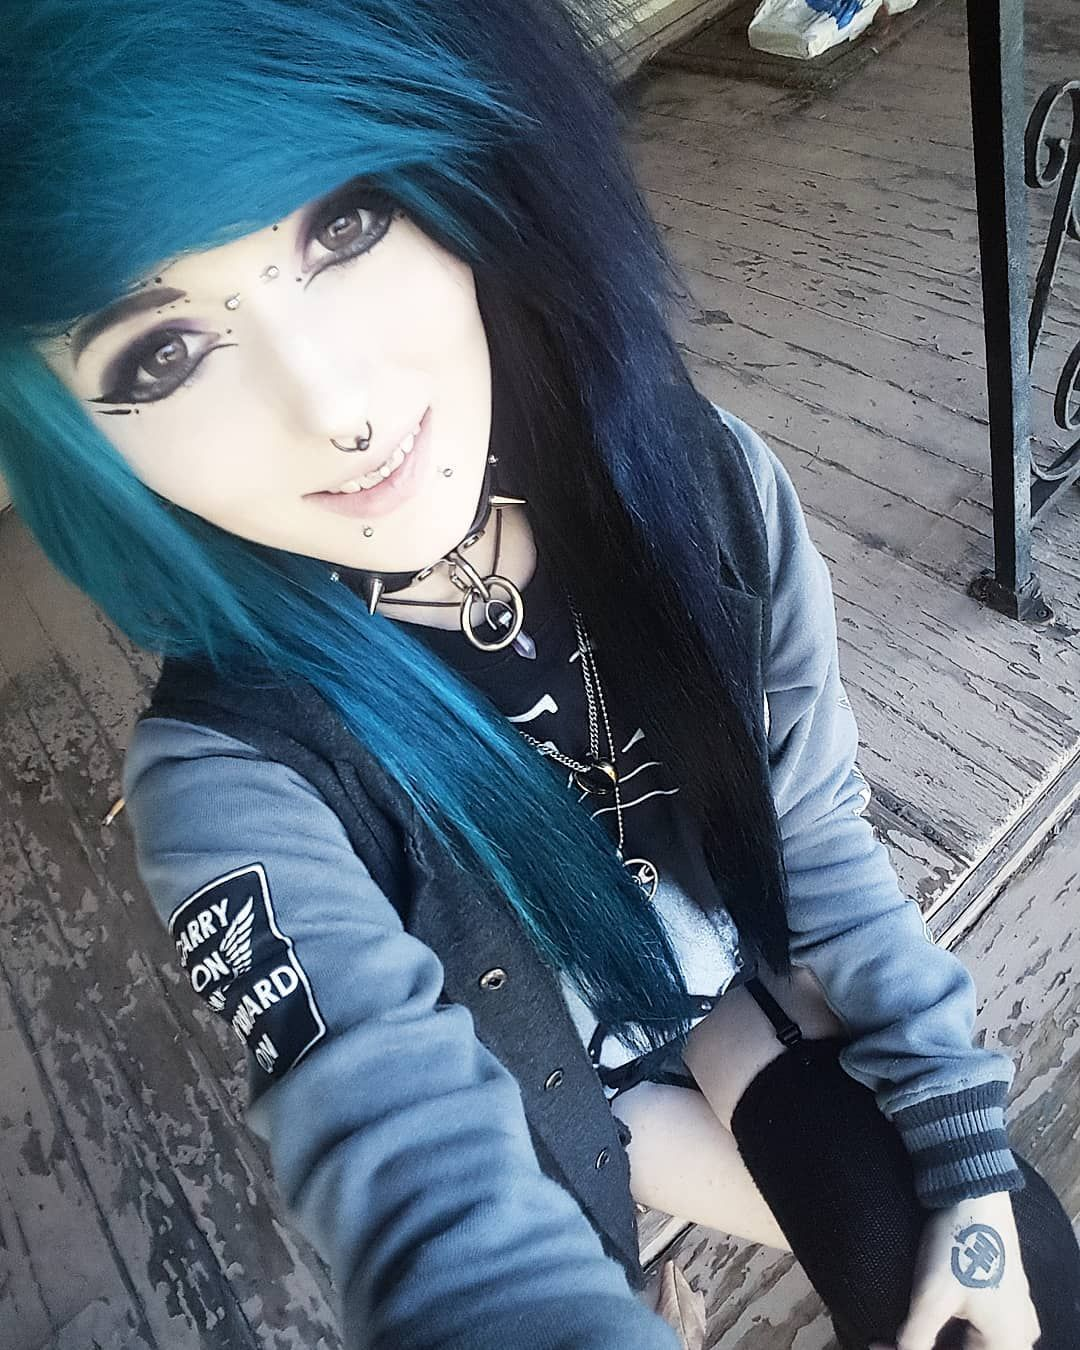 Pin by fallen soul on emoscene pinterest emo emo girls and emo